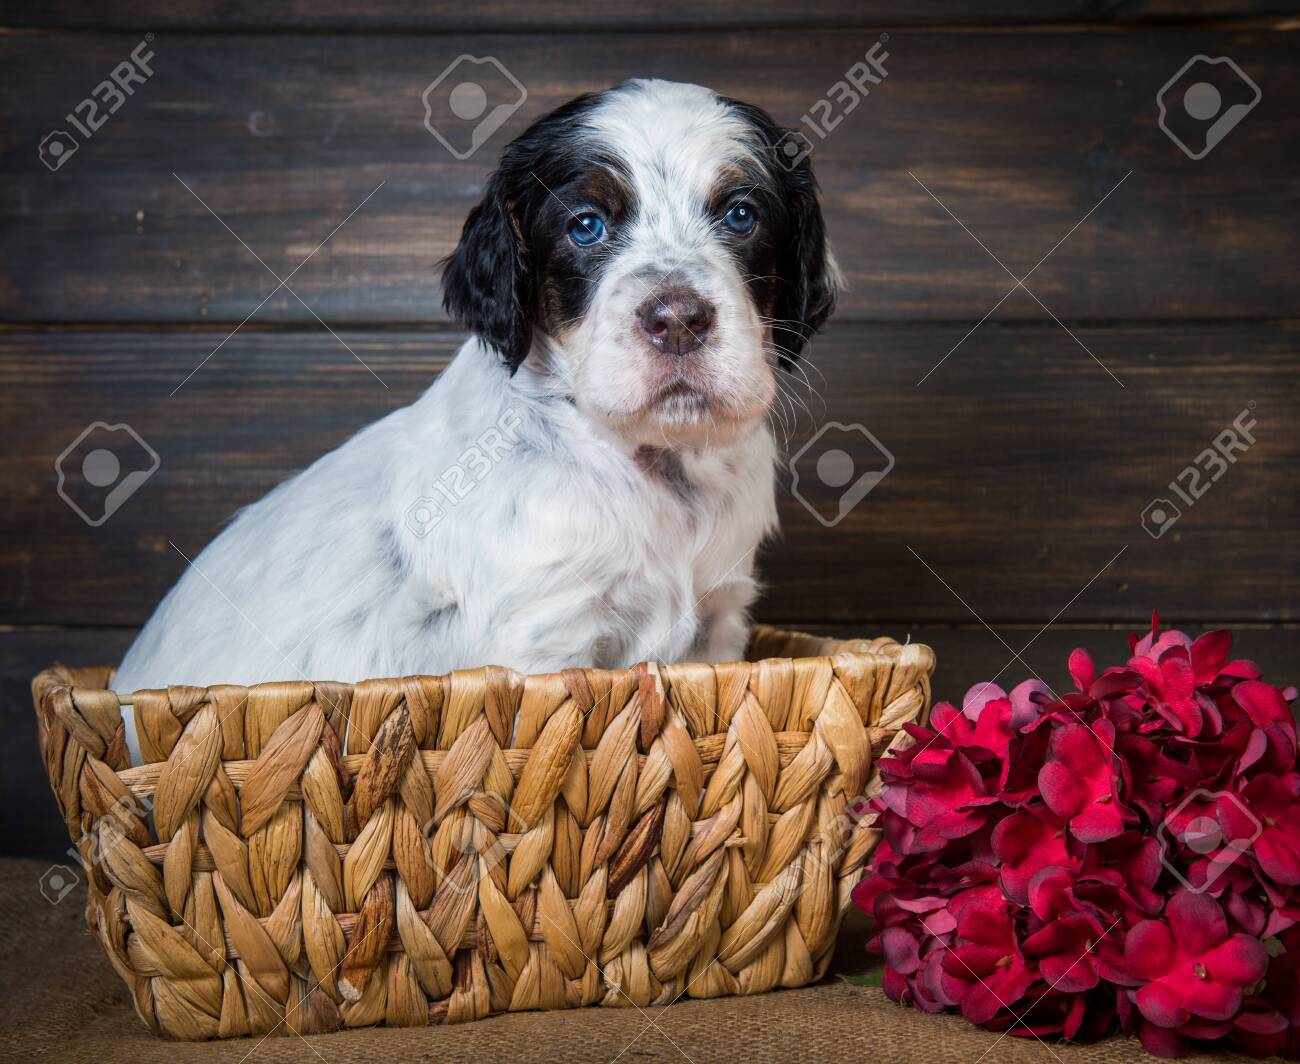 Cute English Setter Puppy Dog With Blue Eyes Stock Photo Picture And Royalty Free Image Image 132675334